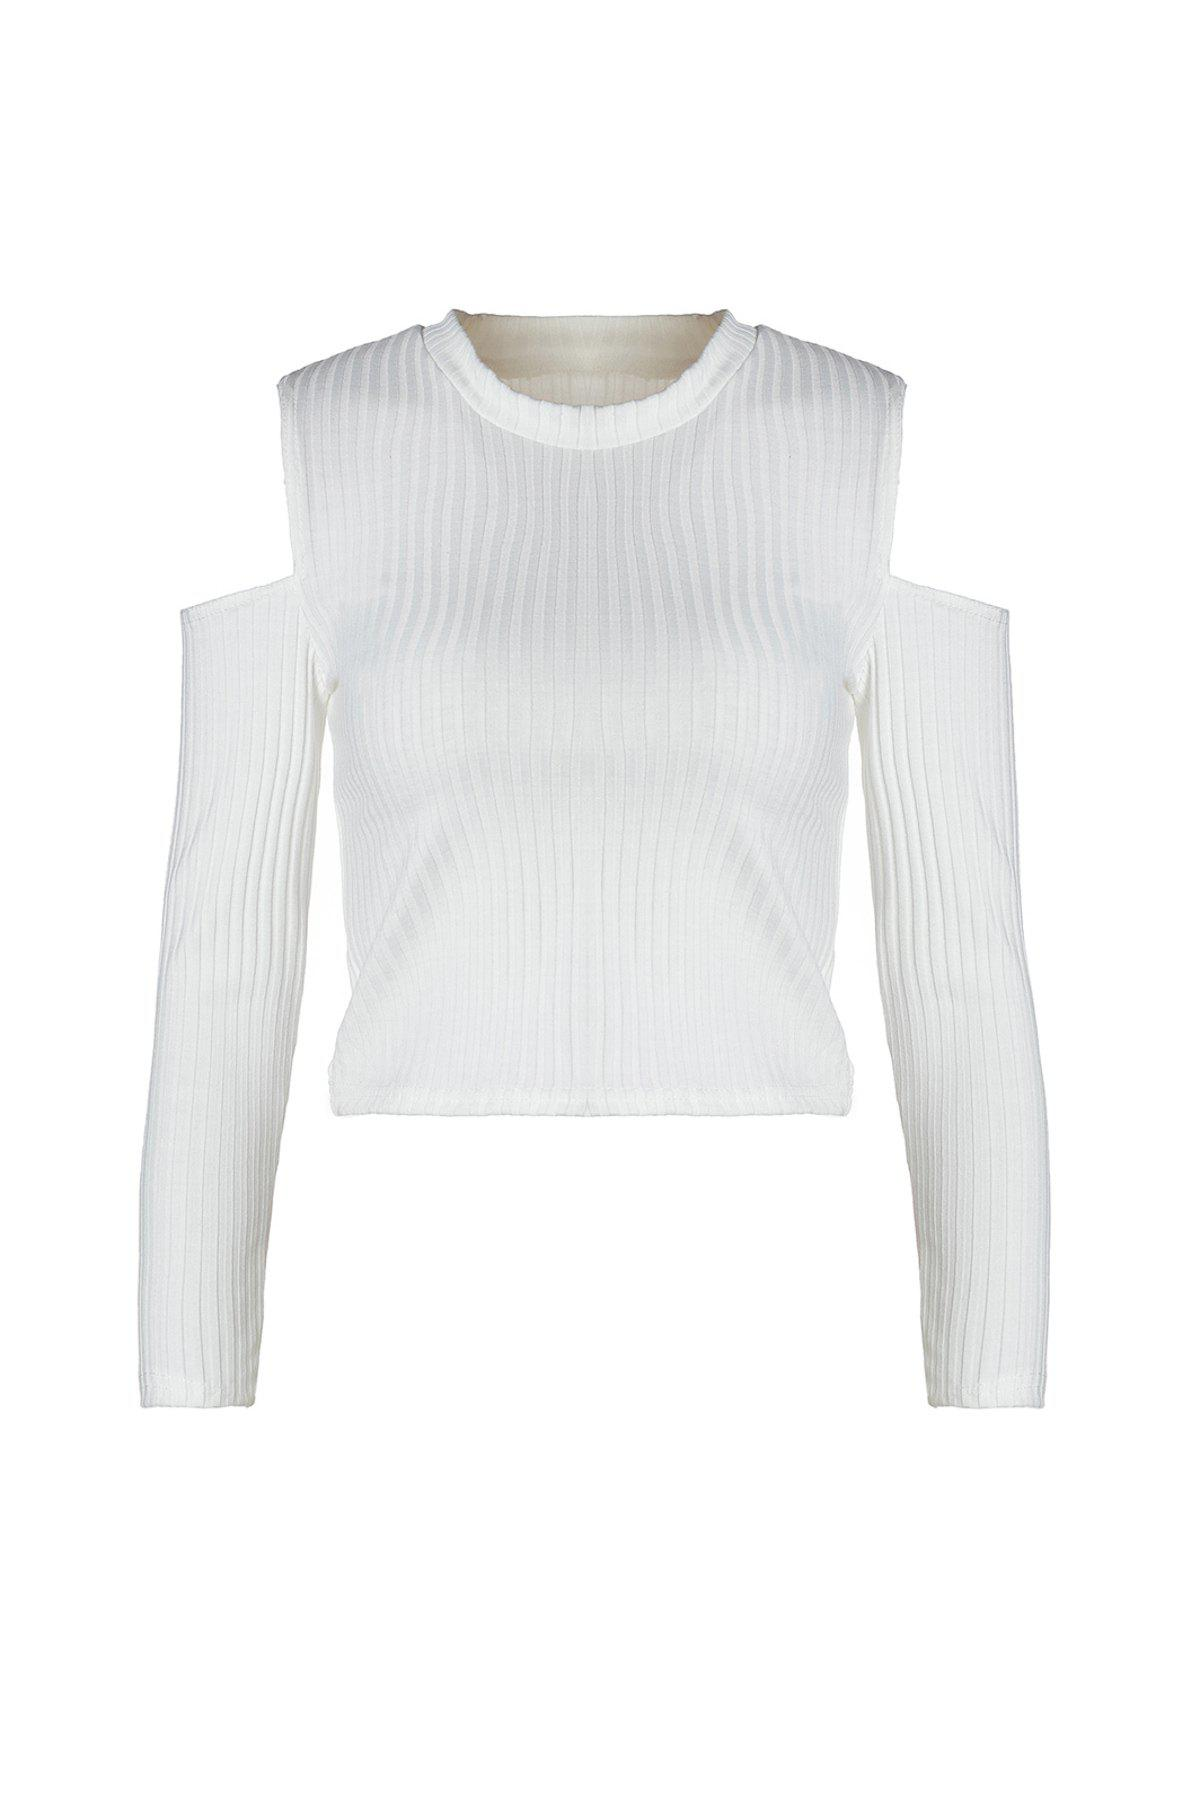 Chic Stylish Round Neck Long Sleeve White Knit Women's Crop Top